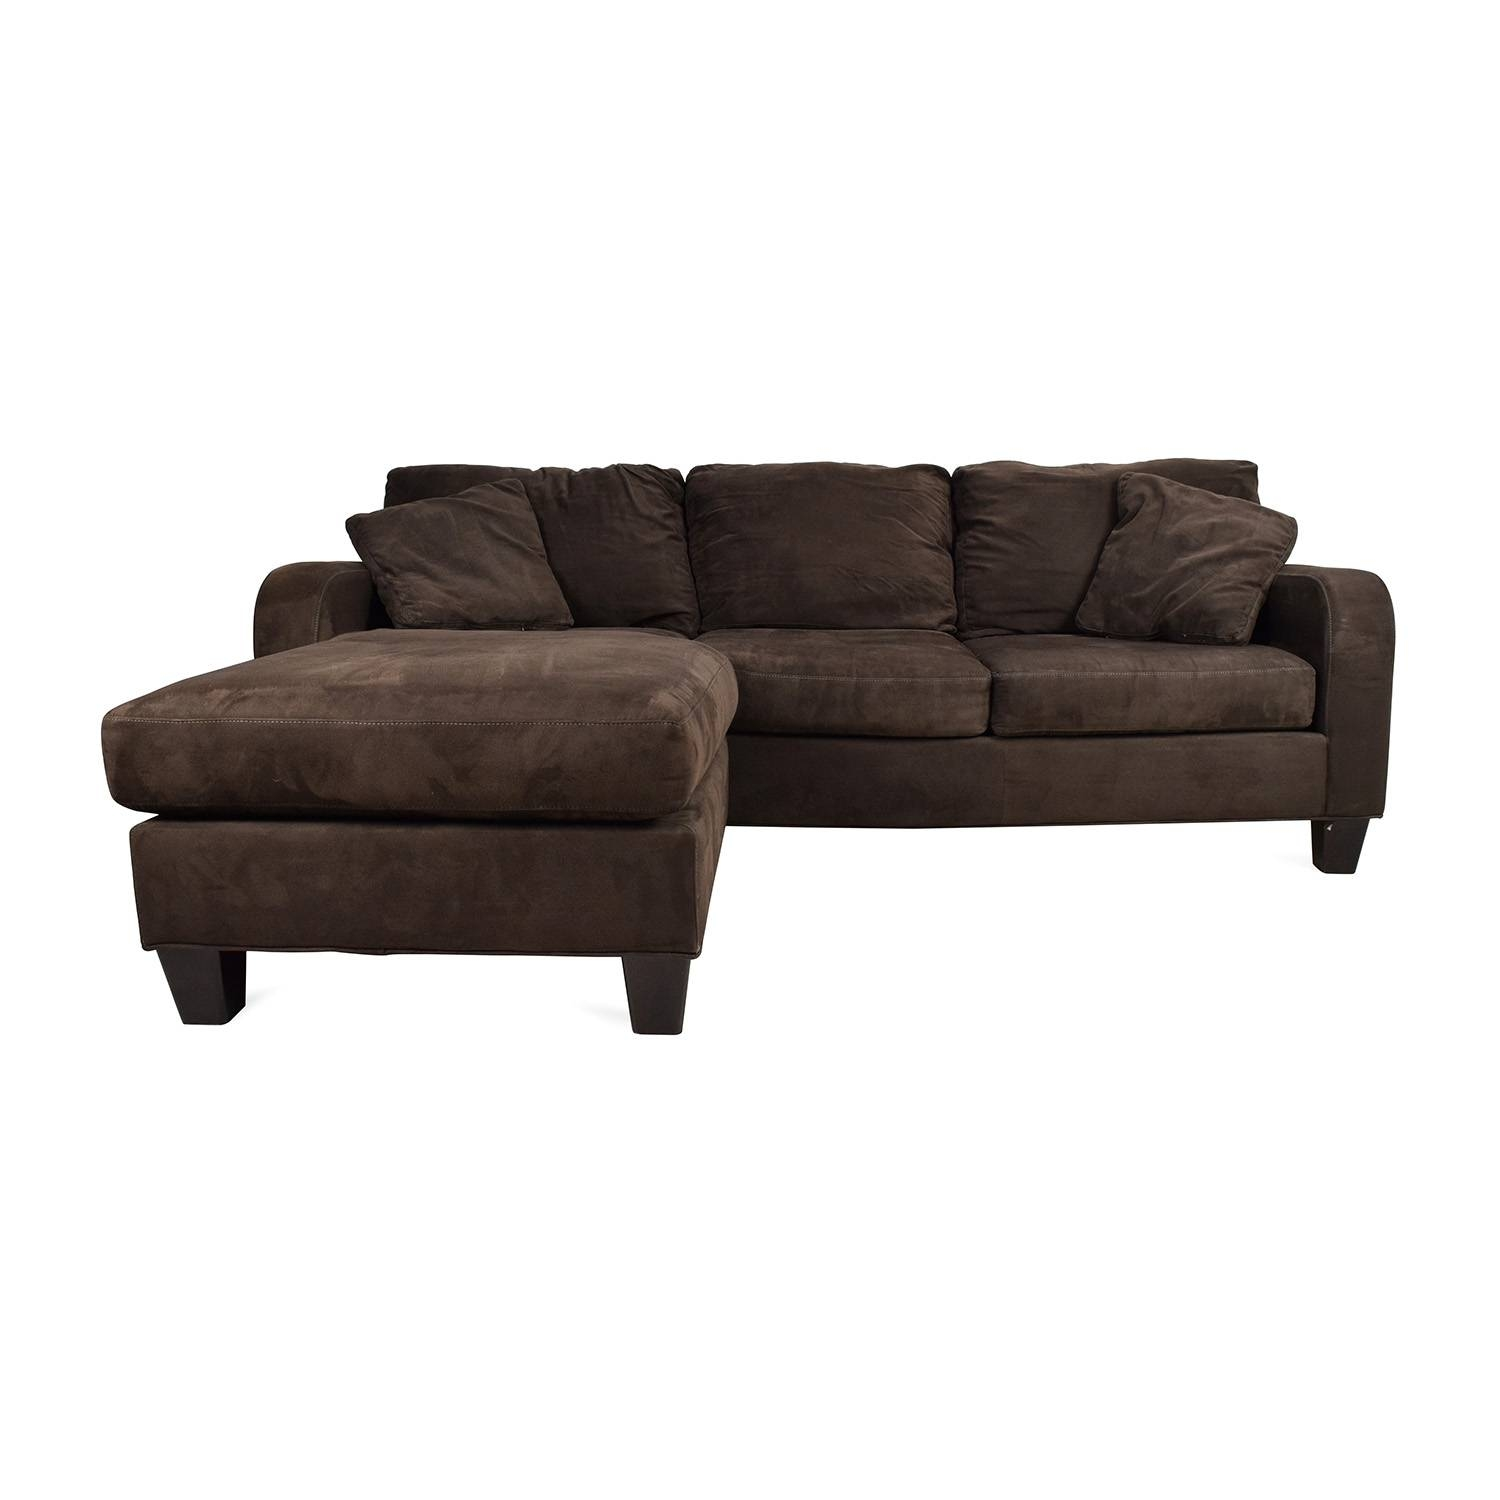 42% Off   Ikea Ikea Kivik Brown Sectional / Sofas Throughout Cindy Crawford Microfiber Sofas (Photo 2 of 15)